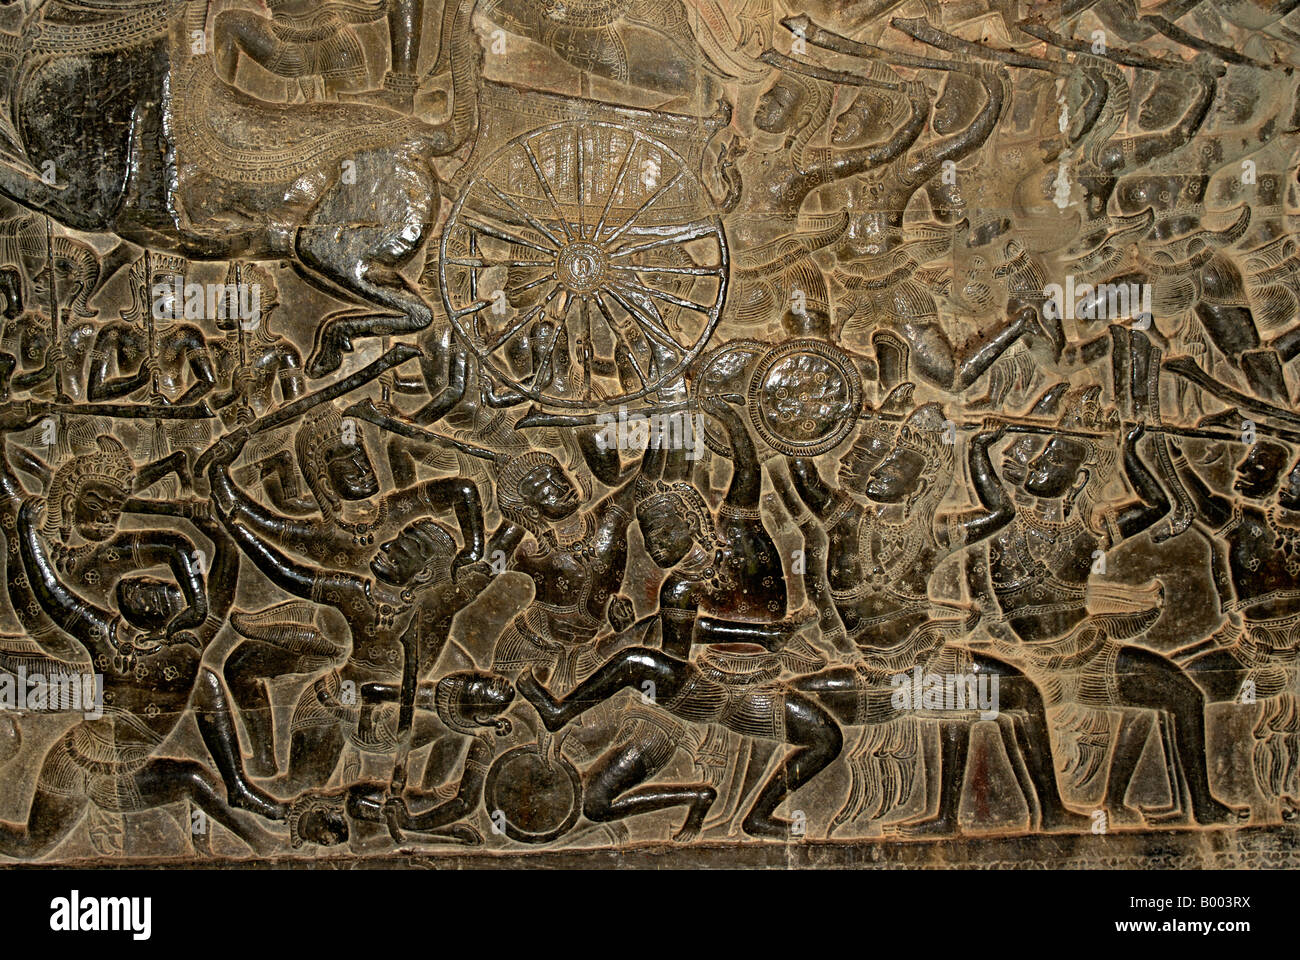 Cambodia, Angkor Wat, early 12th century. Battle scene on chariot upper level Eastern Outer Gallery. - Stock Image